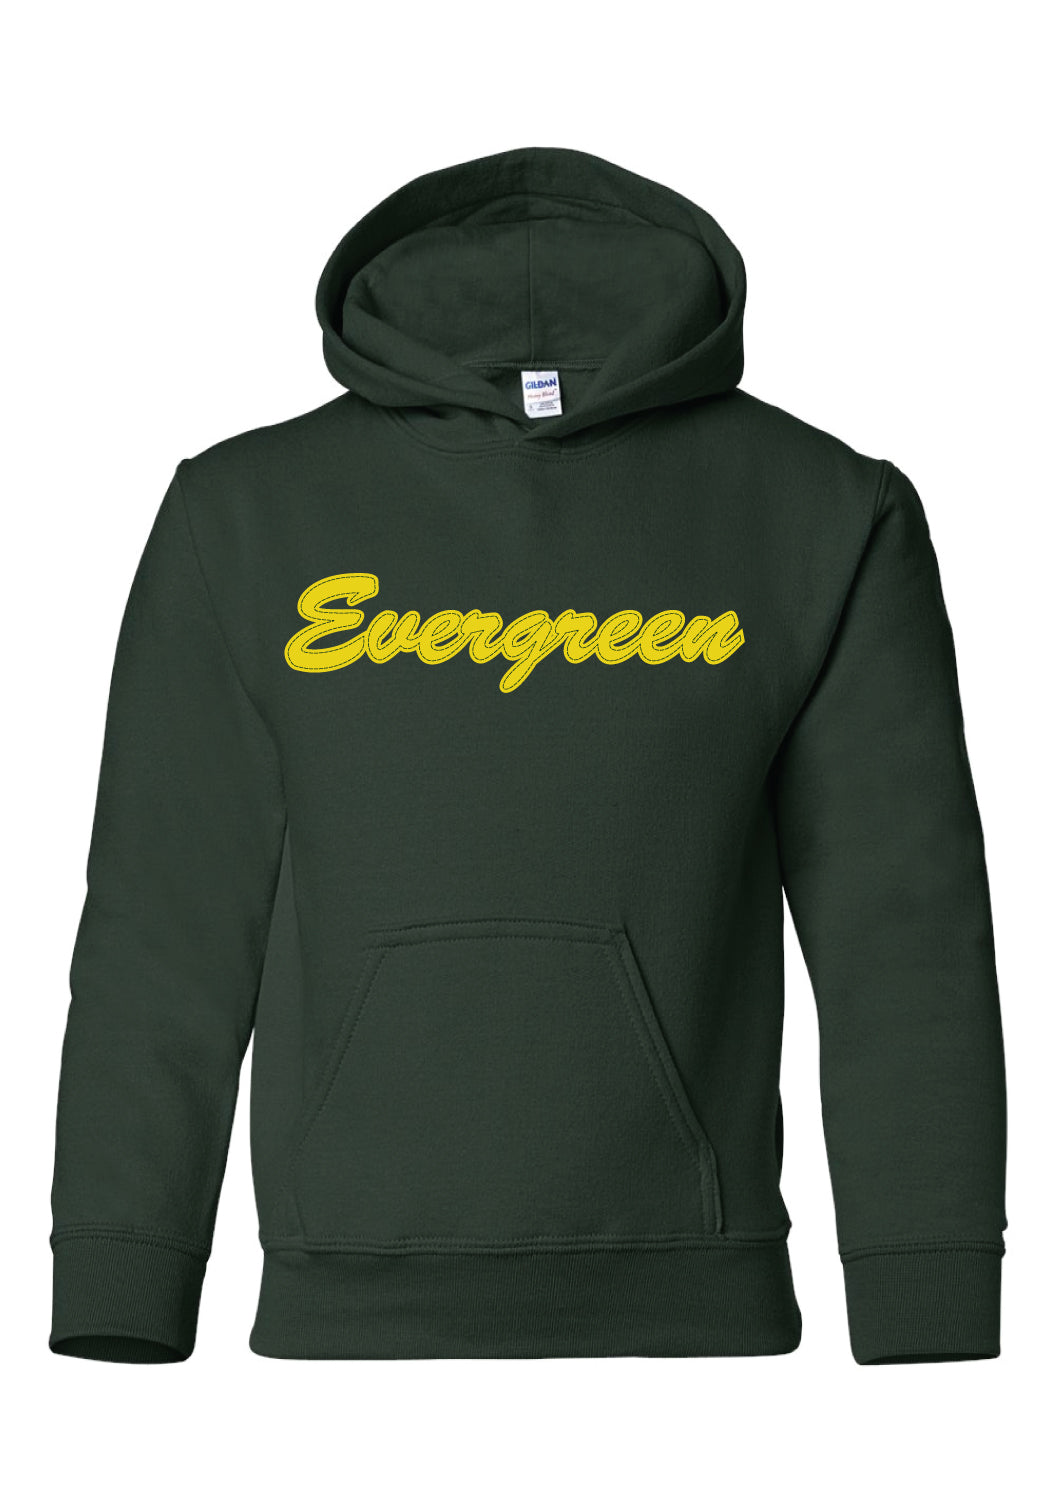 Camp Evergreen Stitched Hoodie